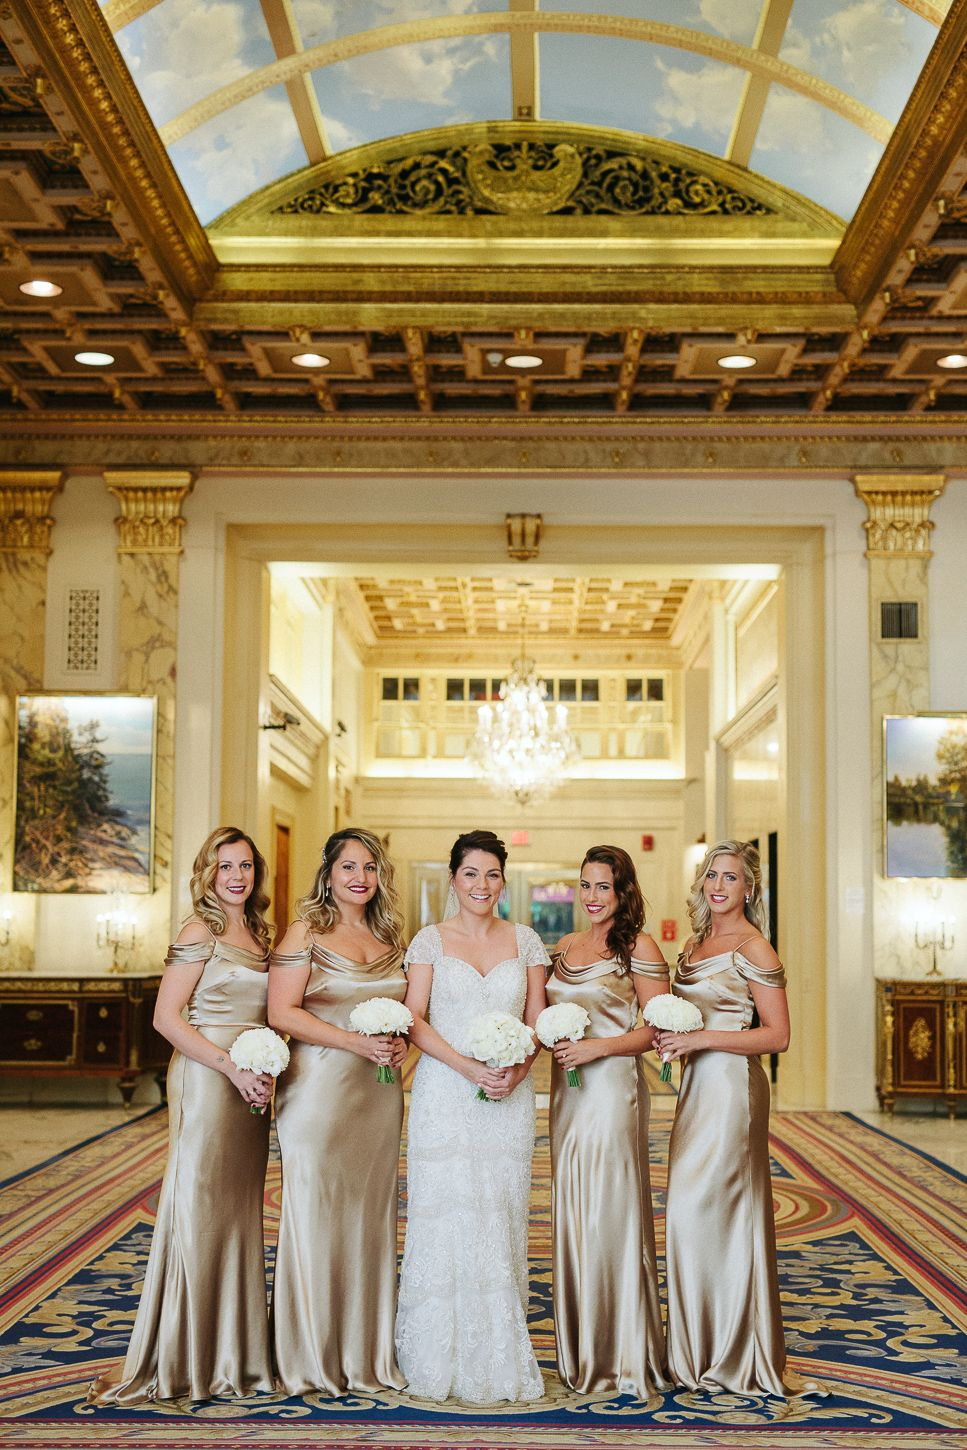 A Fairmont Copley Plaza Wedding Photographed By Boston Photographer Lisa Rigby This Chic City Took Place In Fall